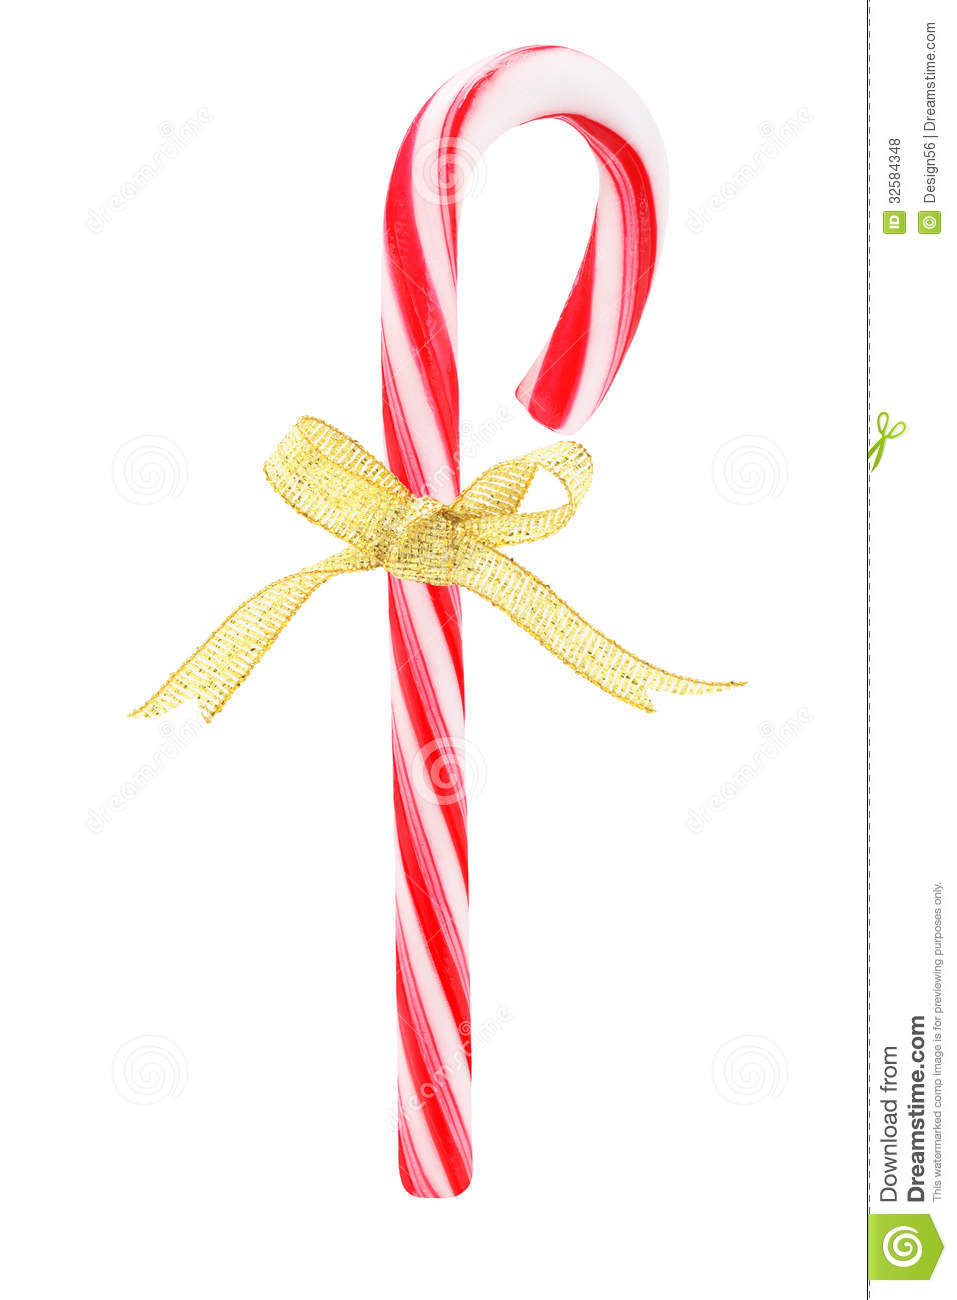 Candy Cane With Bow Ribbon Royalty Free Stock Photos - Image: 32584348